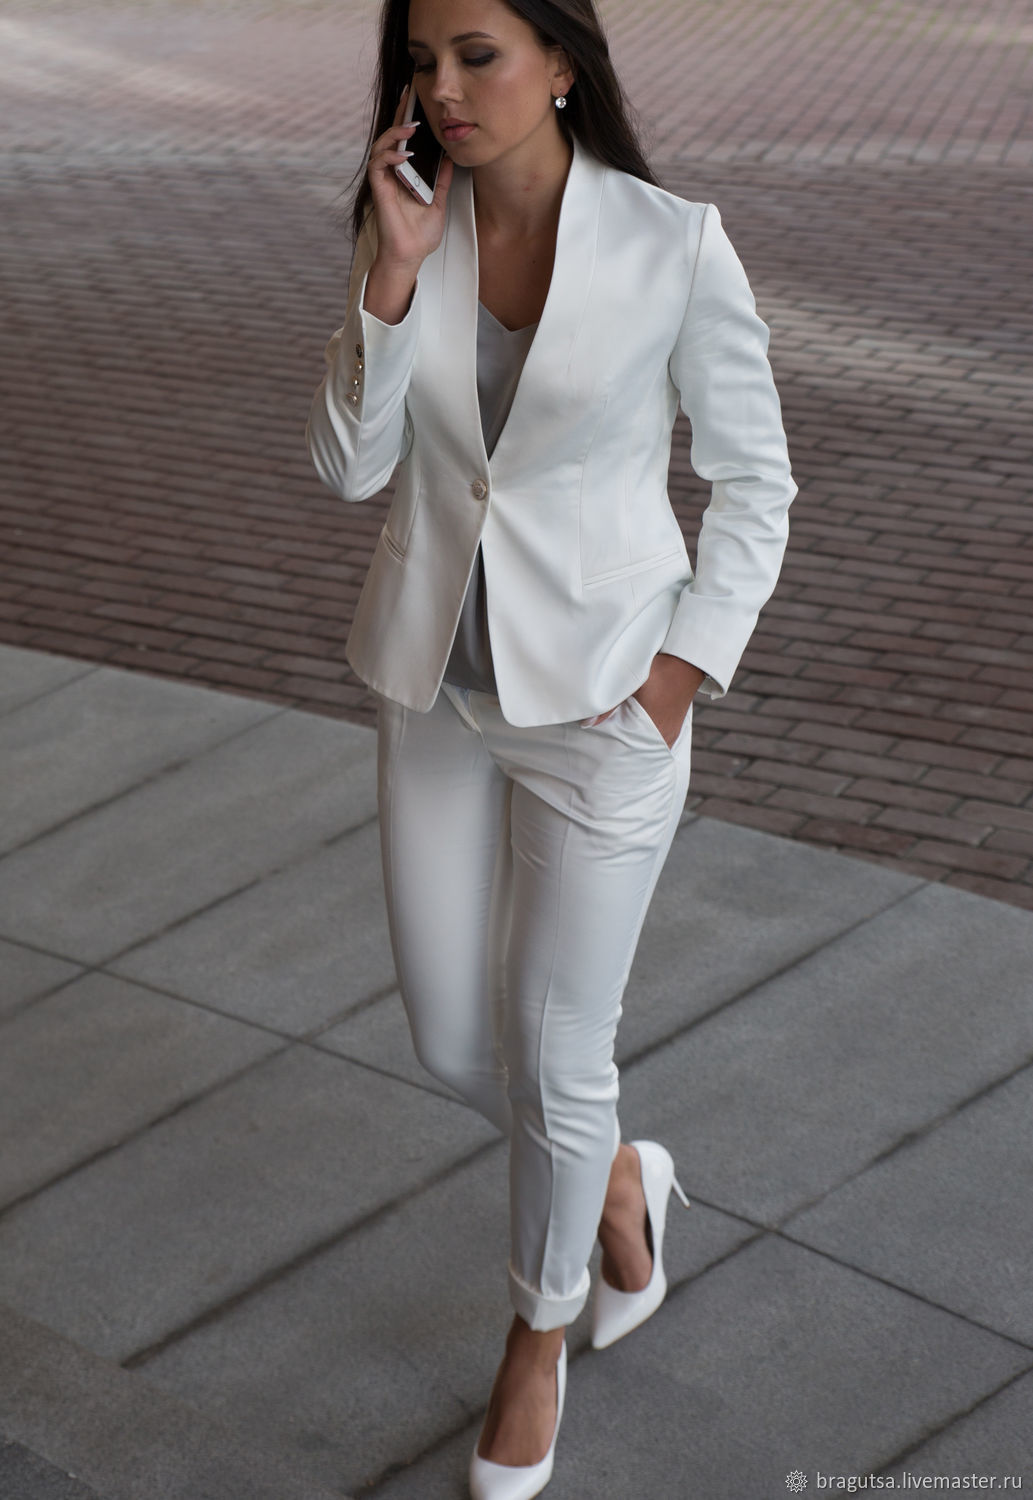 Suit WHITE CLASSIC, Suits, Moscow,  Фото №1